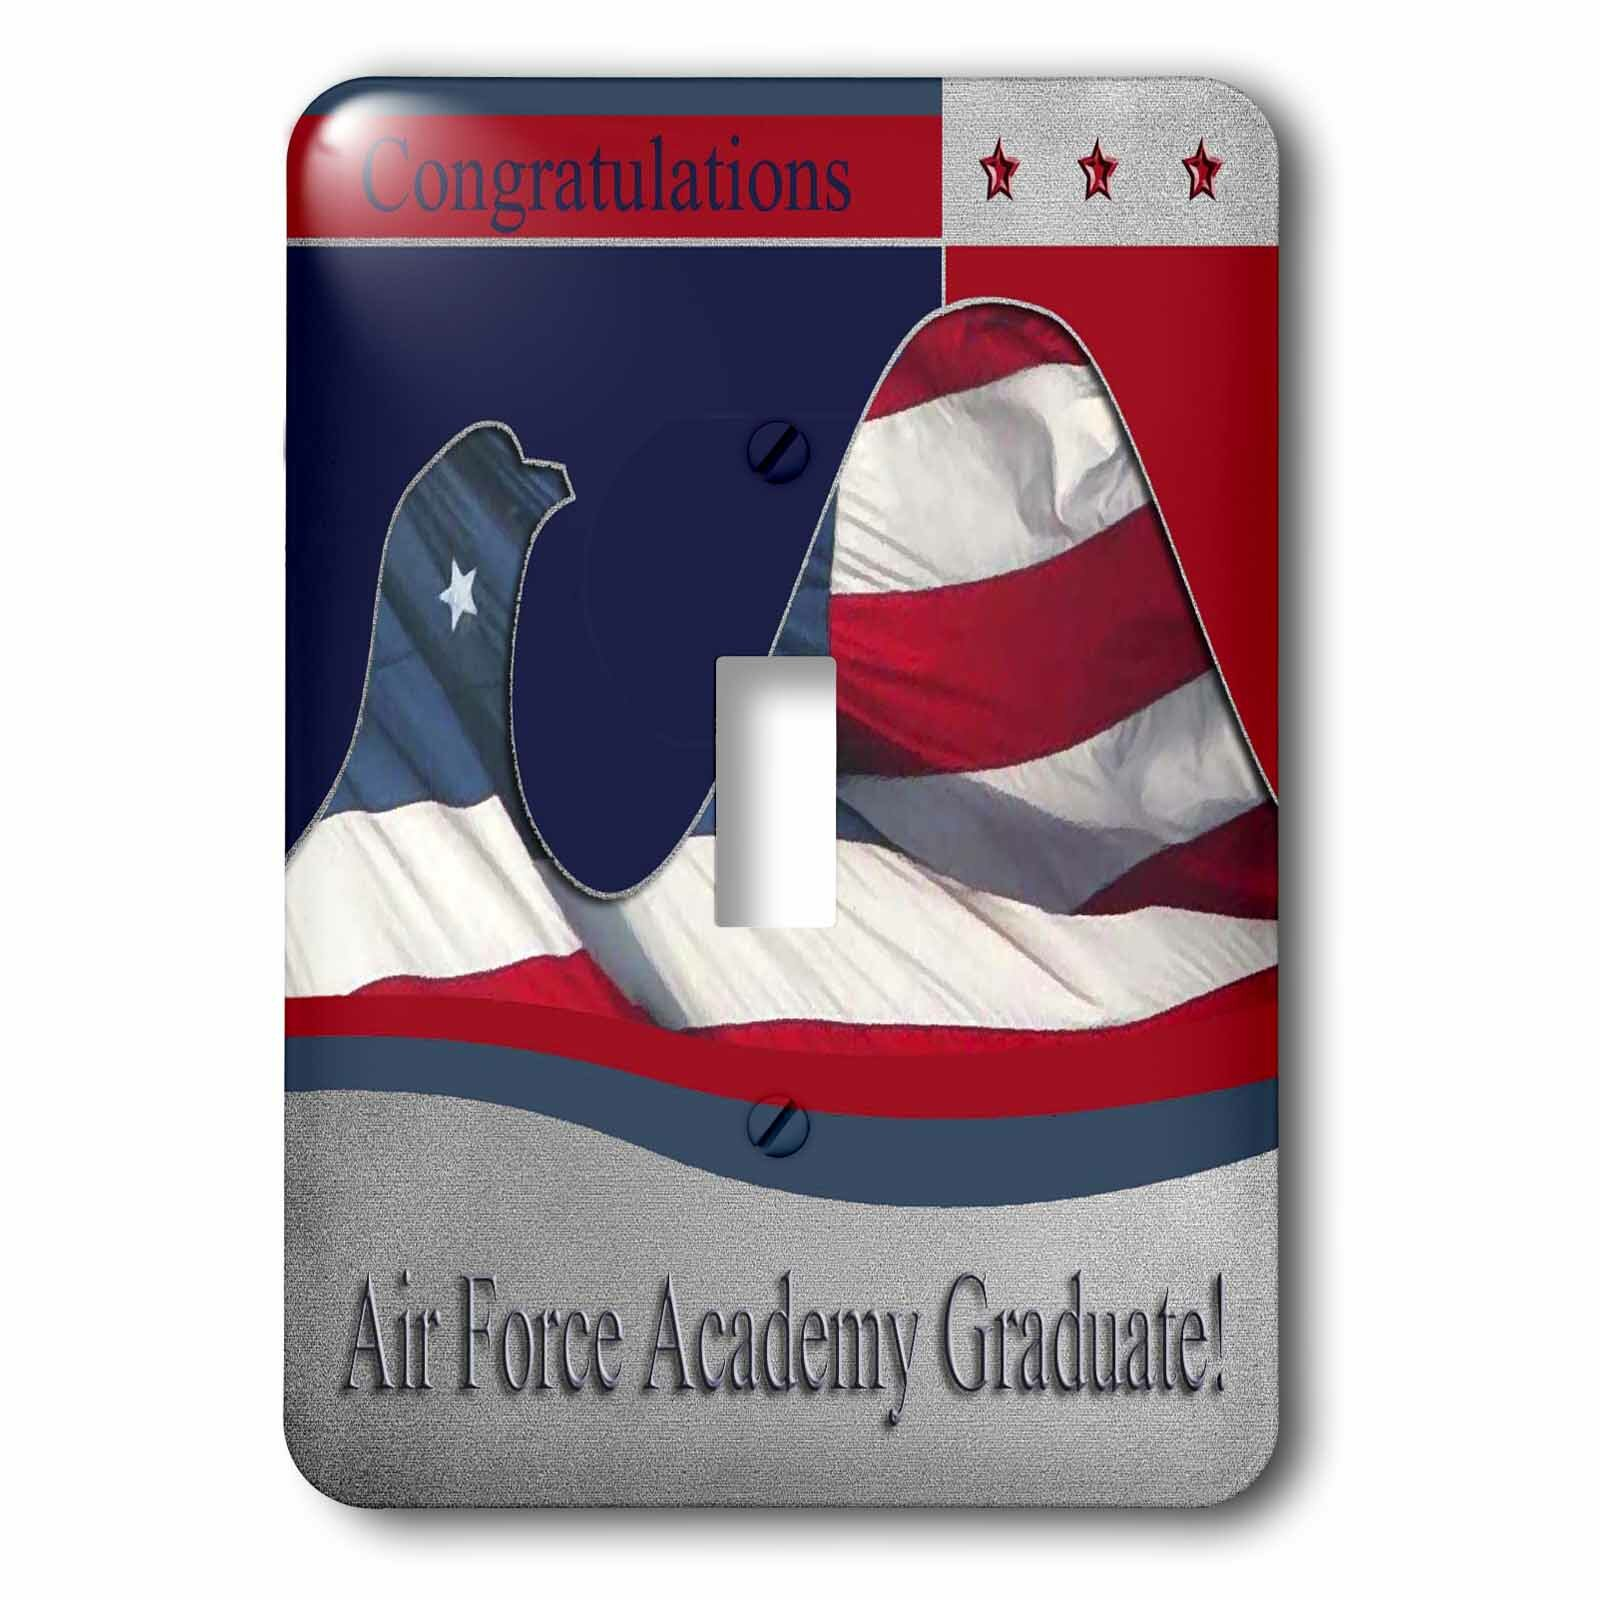 3drose Air Force Academy Graduate 1 Gang Toggle Light Switch Wall Plate Wayfair